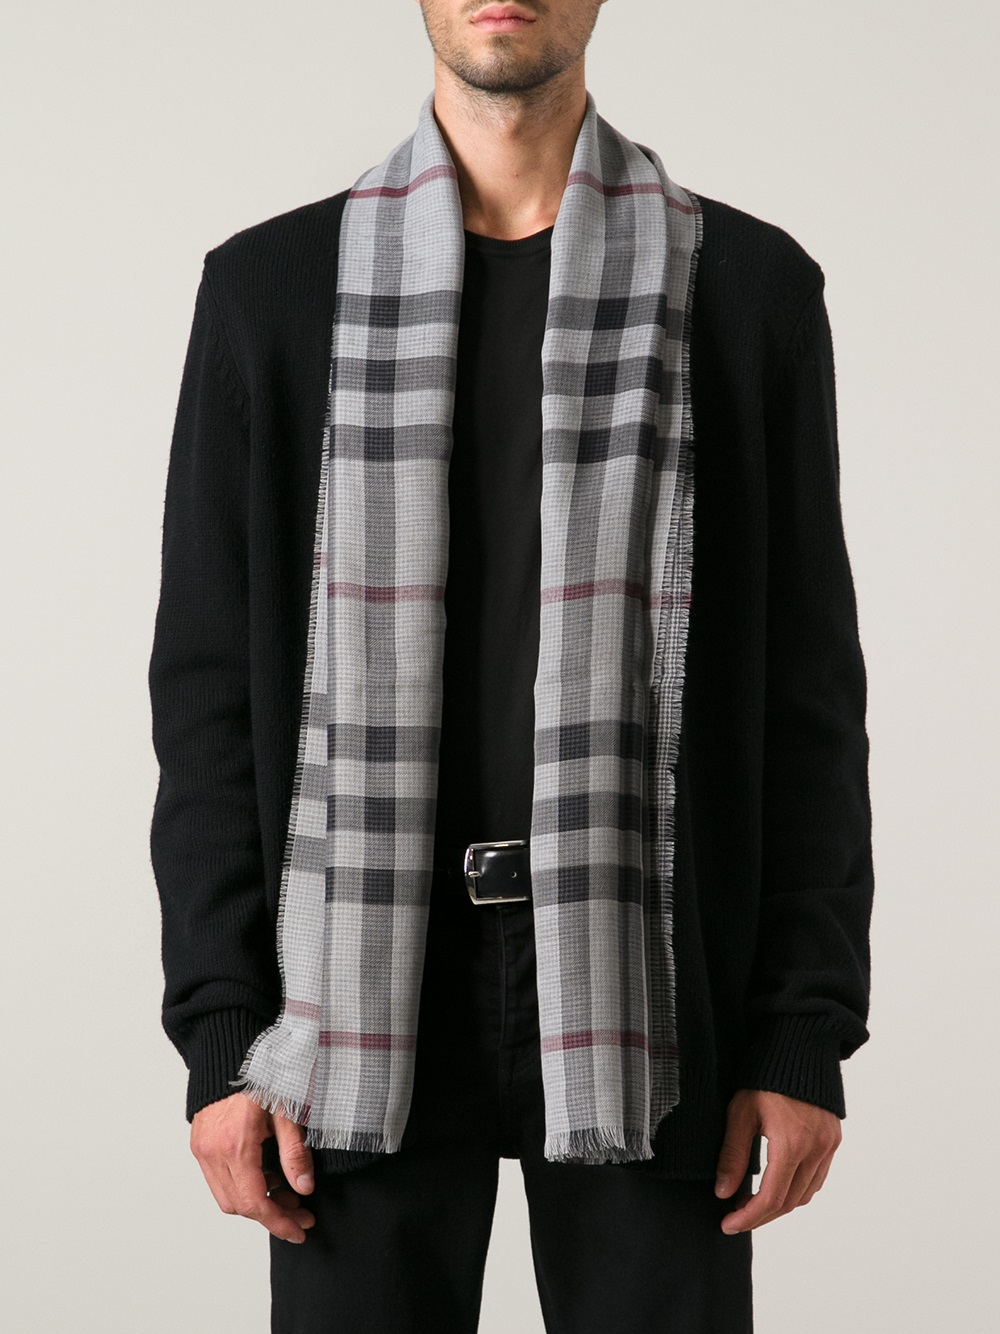 Burberry Scarf Mens 2013 Online Shopping For Women Men Kids Fashion Lifestyle Free Delivery Returns